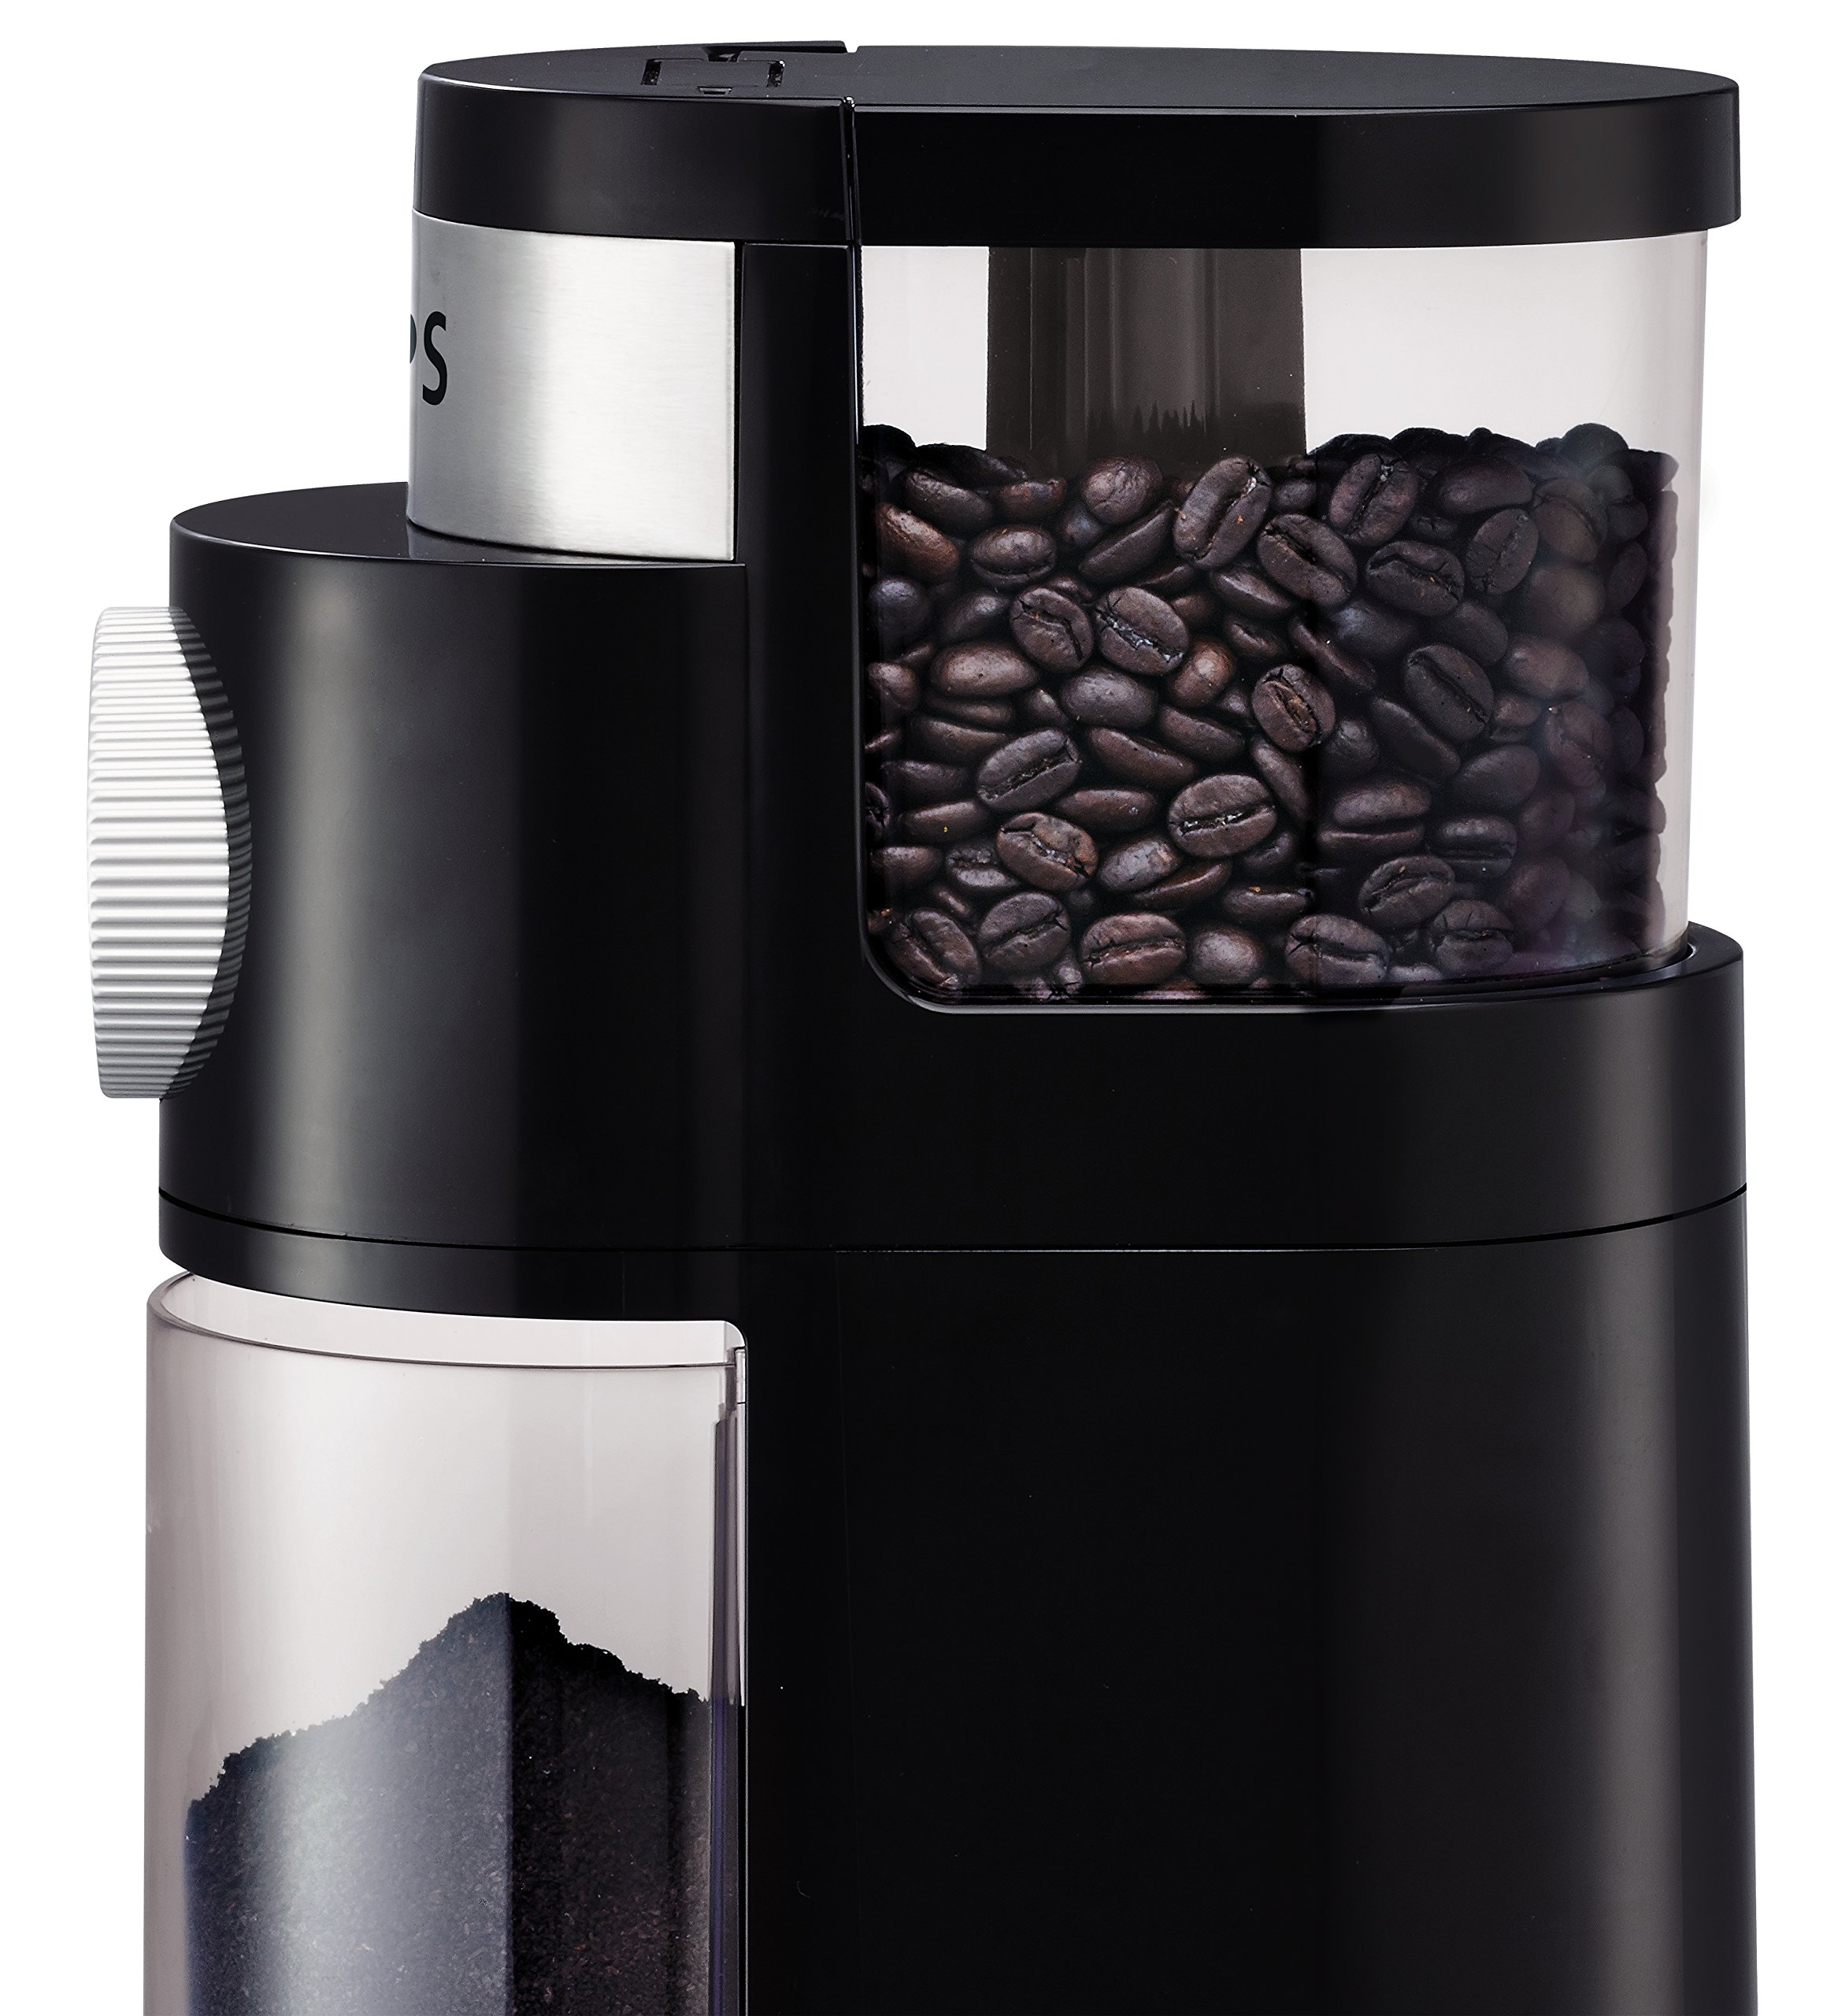 KRUPS GX5000 Professional Electric Coffee Burr Grinder with Grind Size and Cup Selection, 7-Ounce, Black by KRUPS (Image #2)